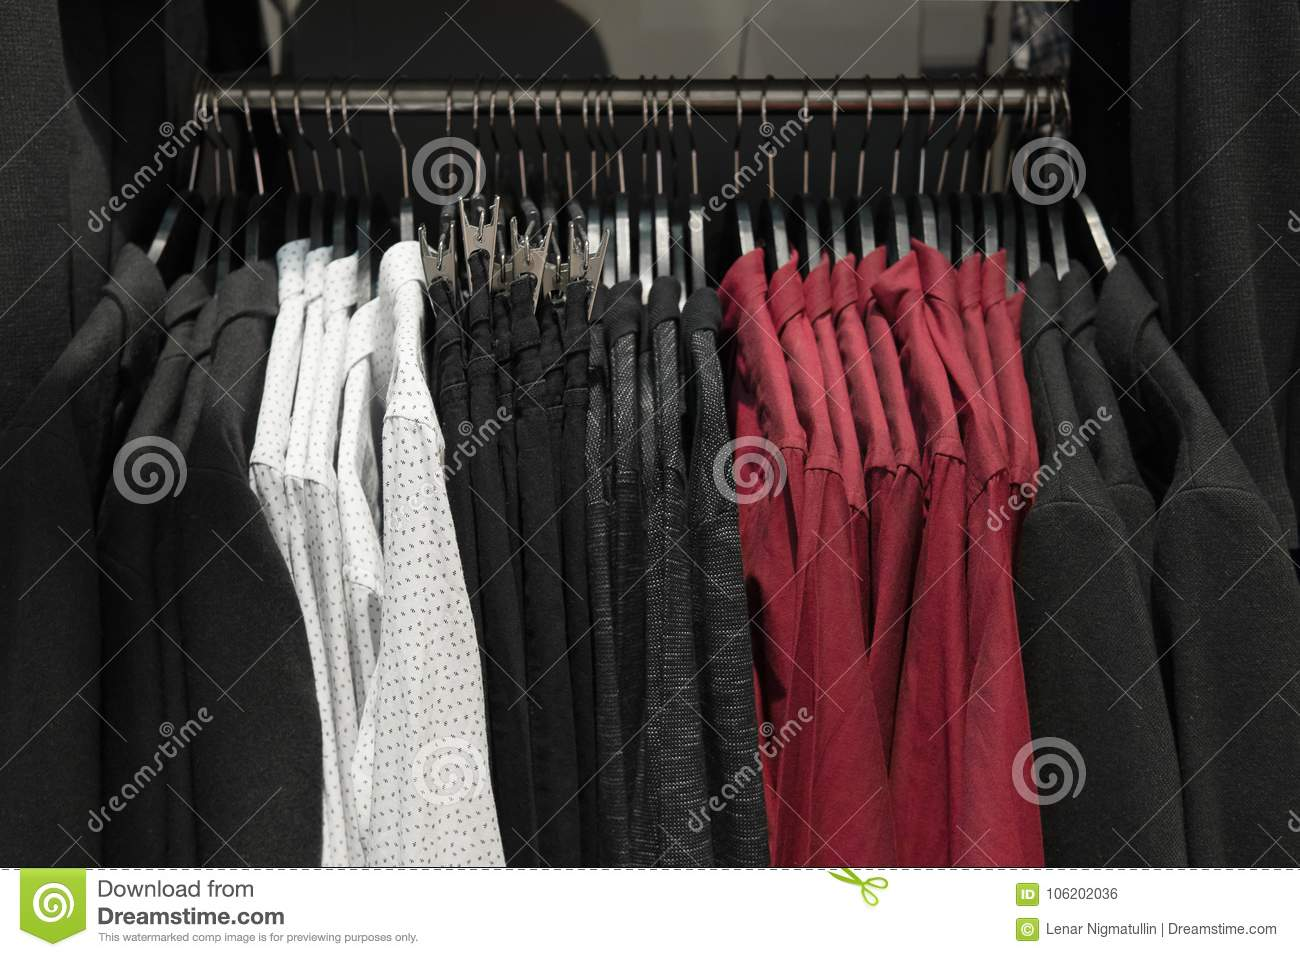 Classic Men Clothes, Suits, Shirts And Pants On The Racks In Clothing Store,  Shopping. Wardrobe Of Male Clothing On The Hanger, Fabric Textile